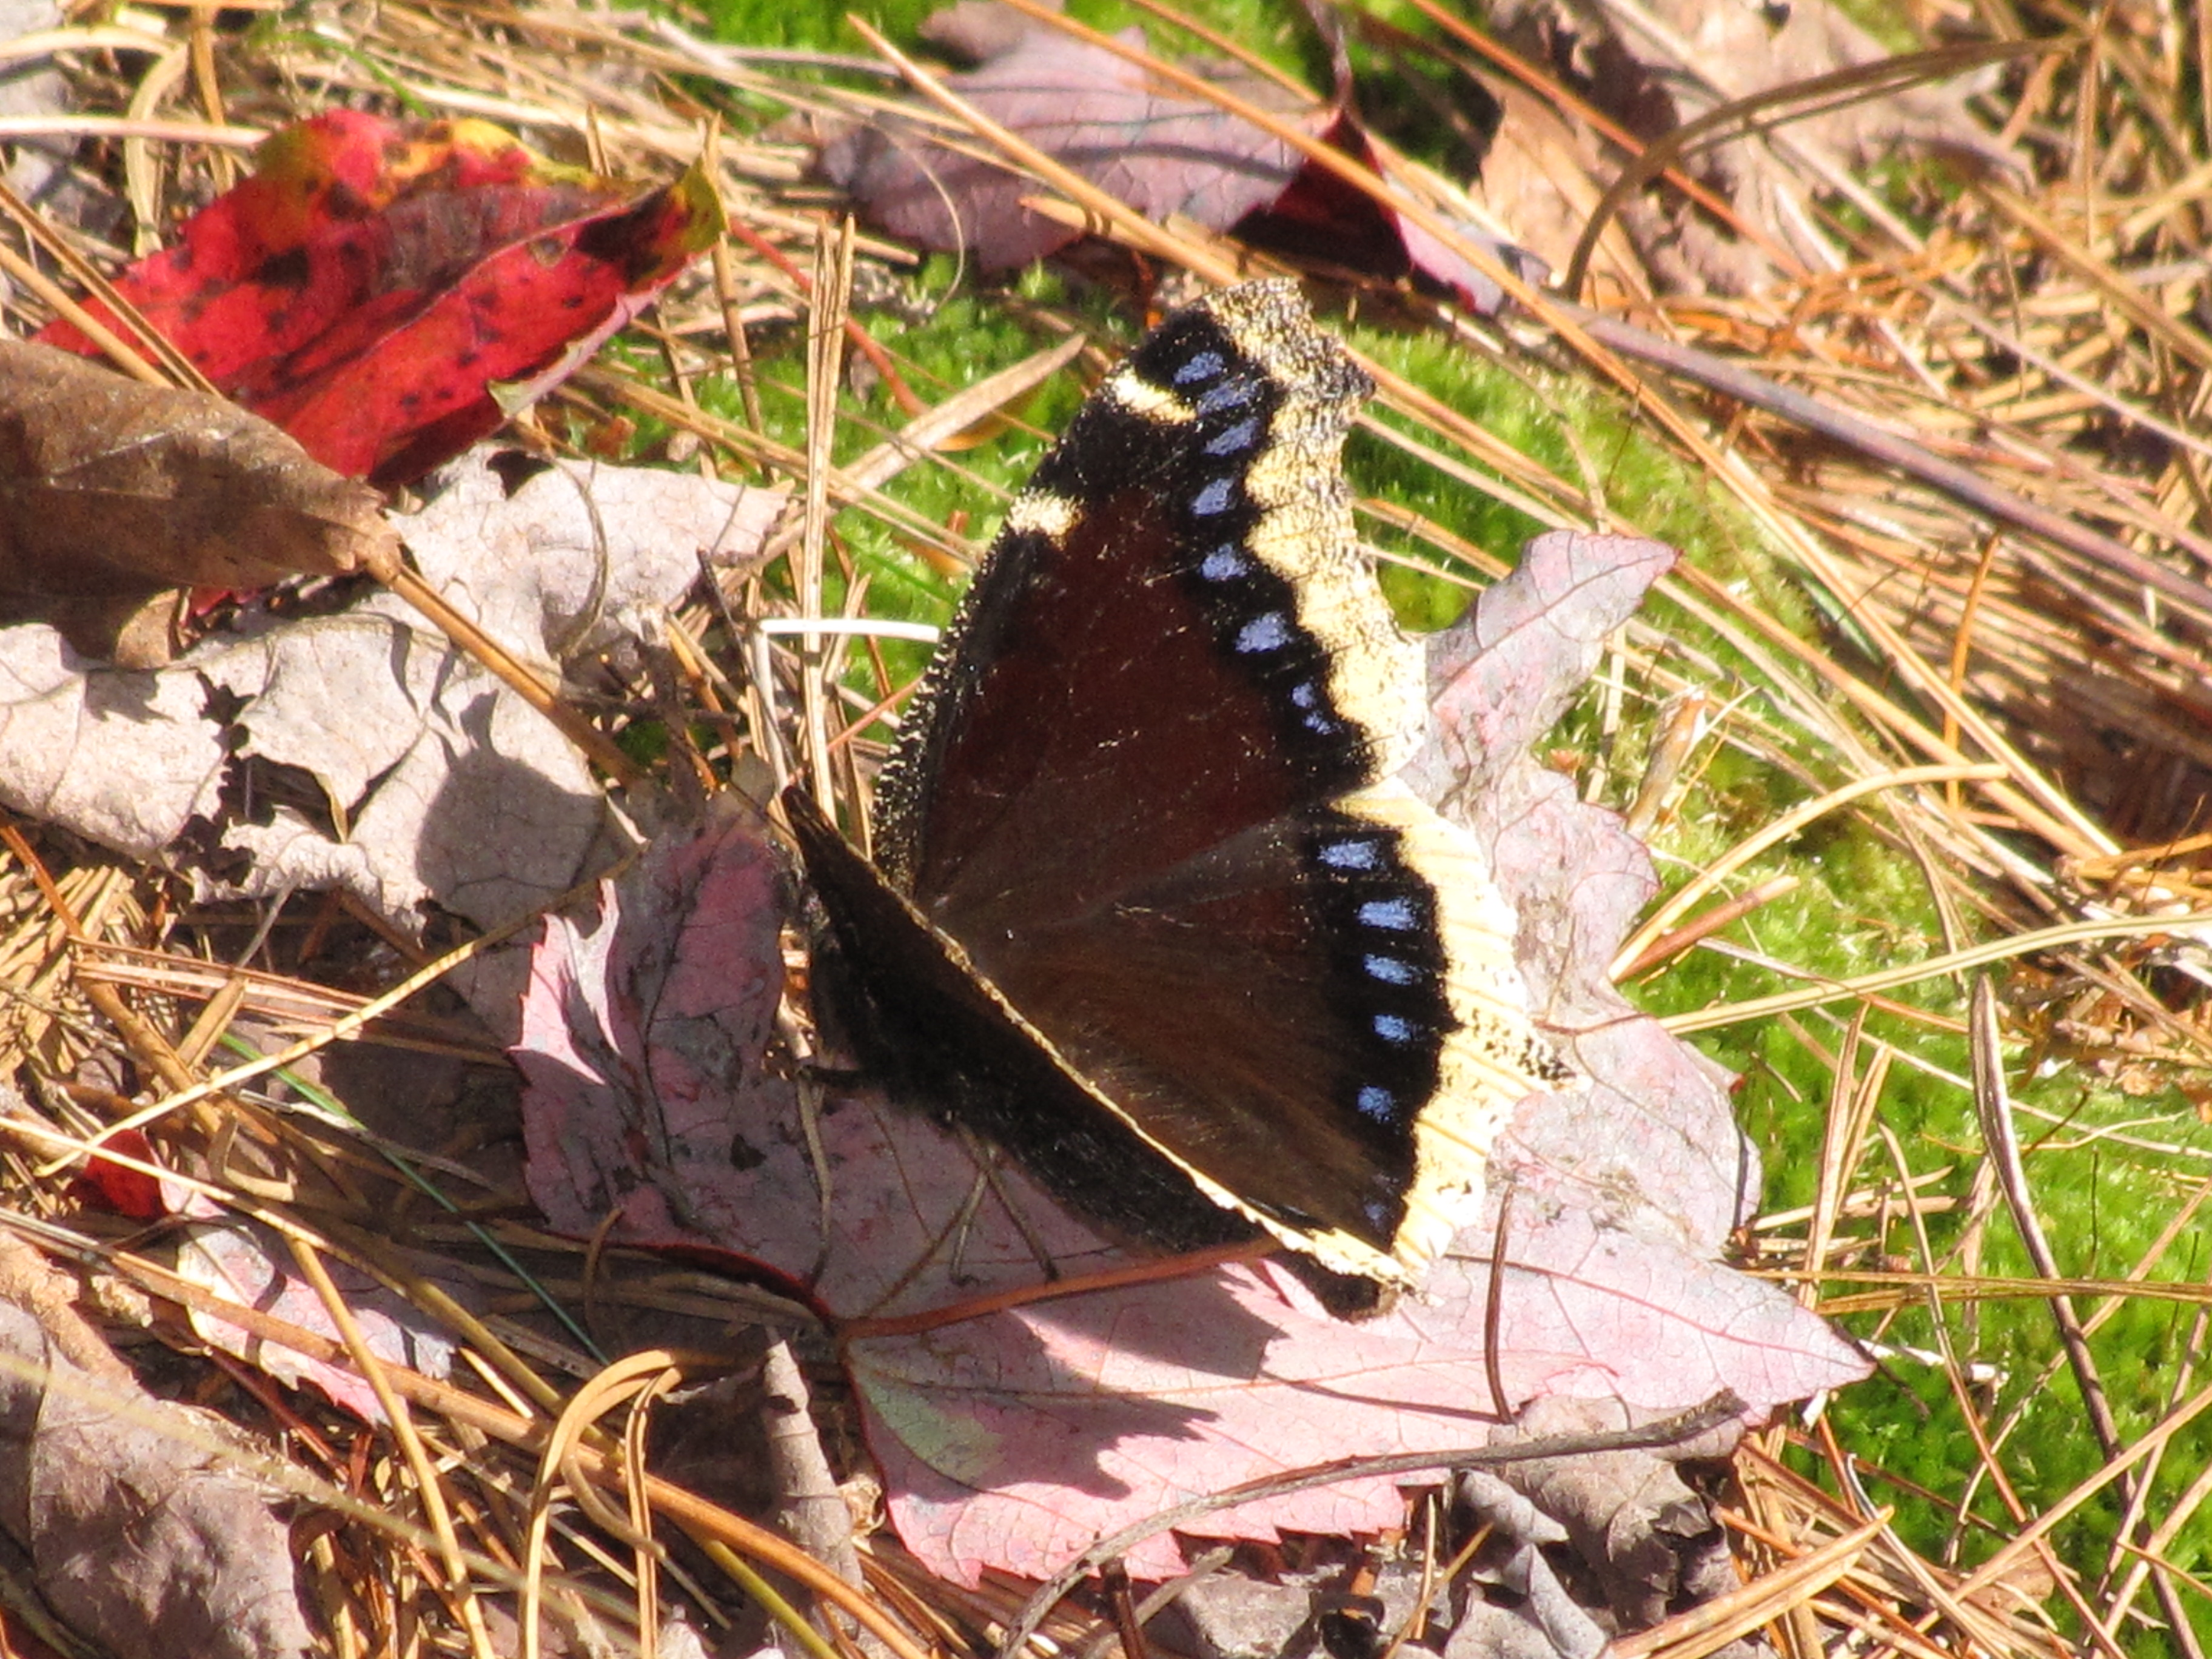 Mourning cloak can be observed at Paynes Prairie Preserve State Park, Little Talbot Island State Park and Big Talbot Island State Park.